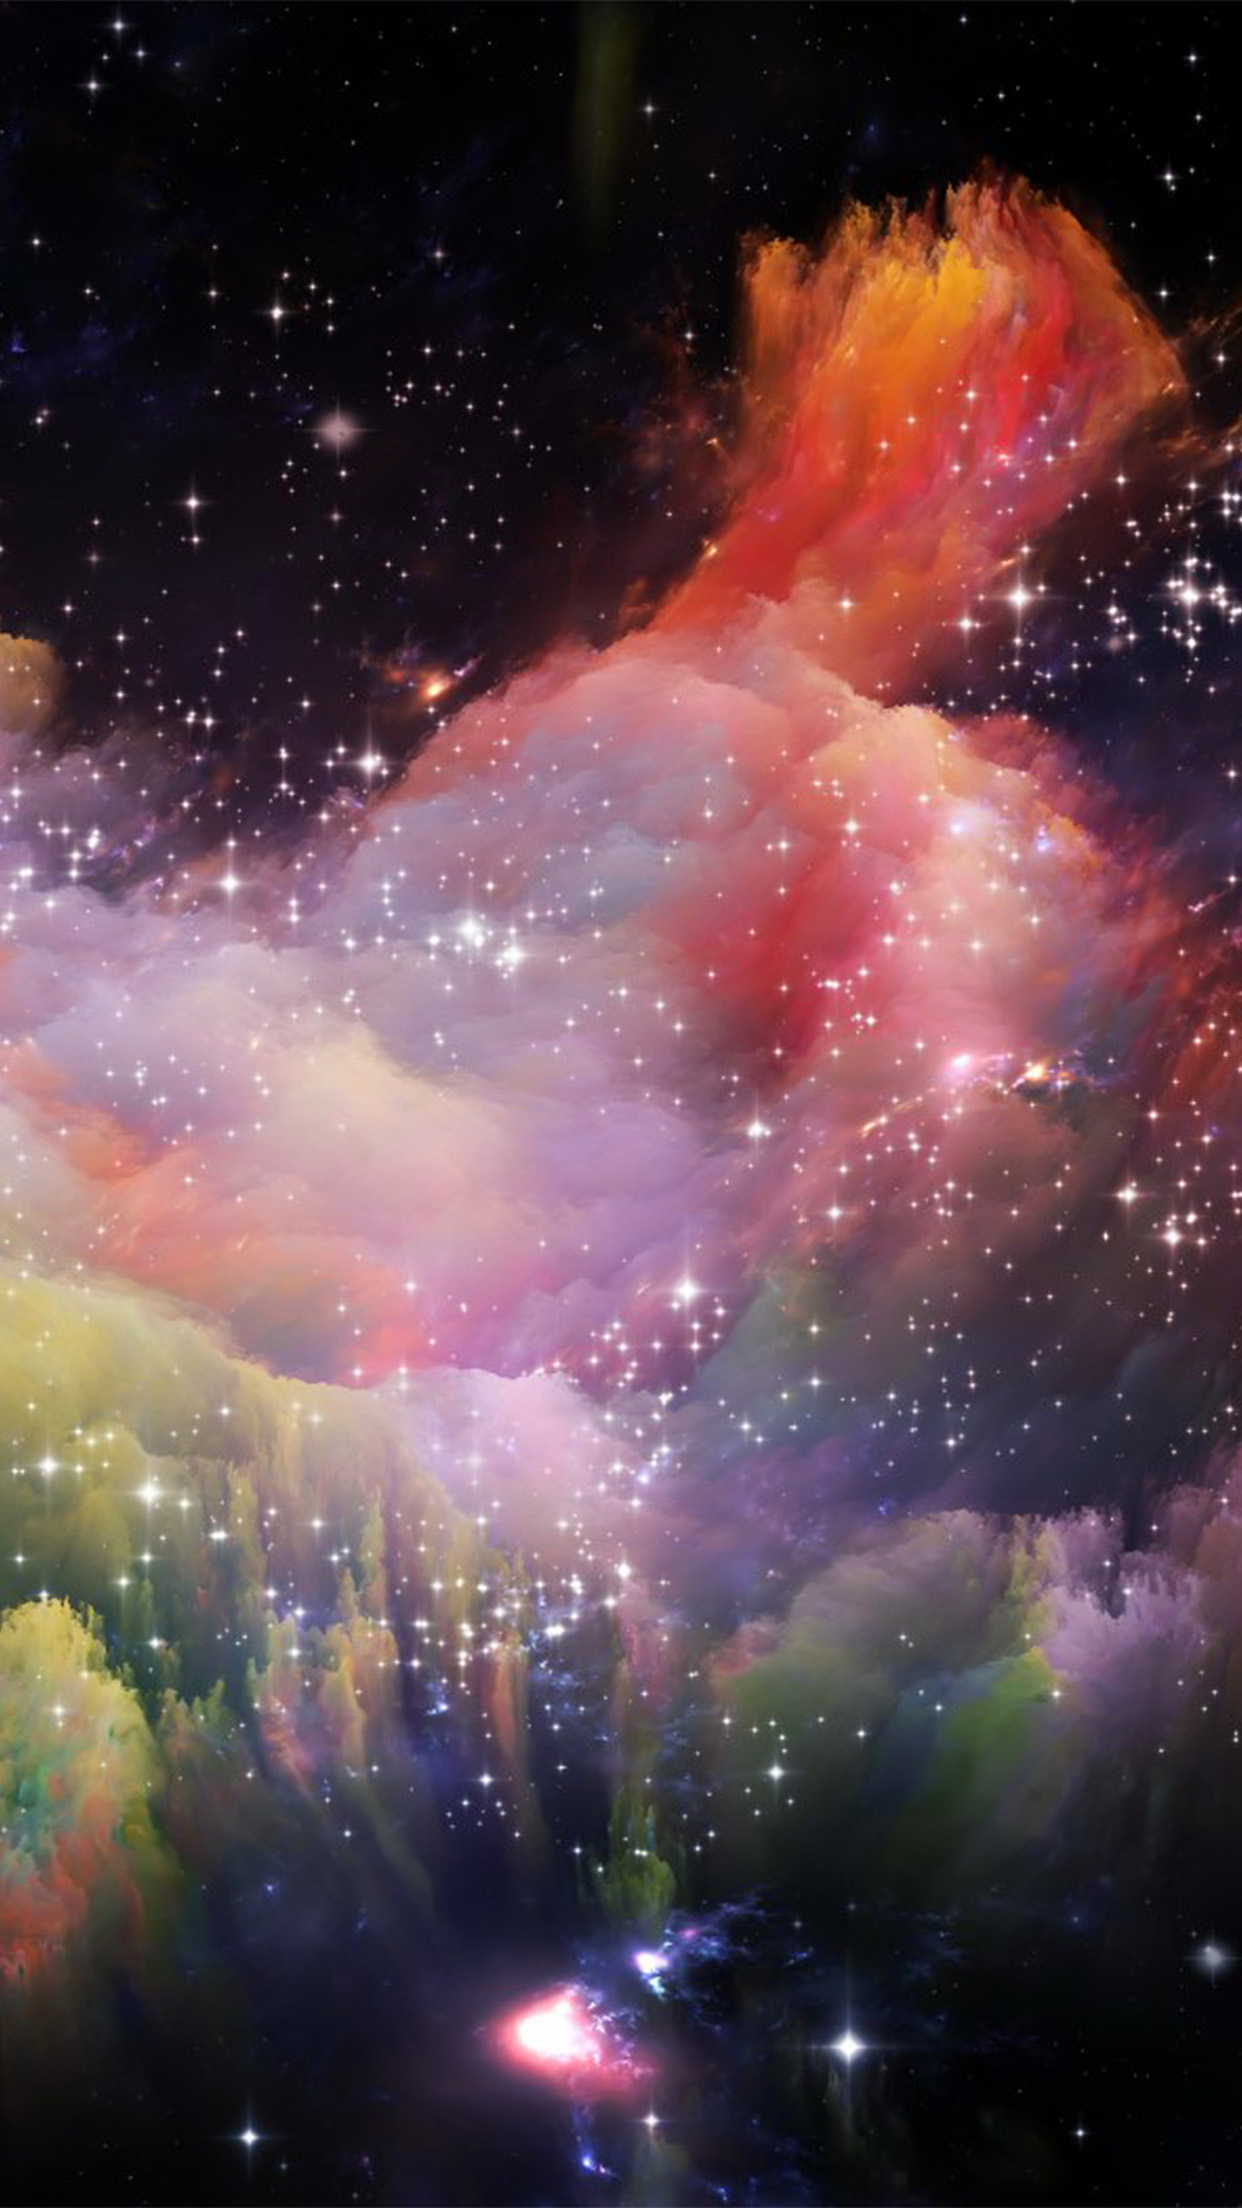 I love papers as35 space rainbow colorful star art - Iphone 6 space wallpaper download ...